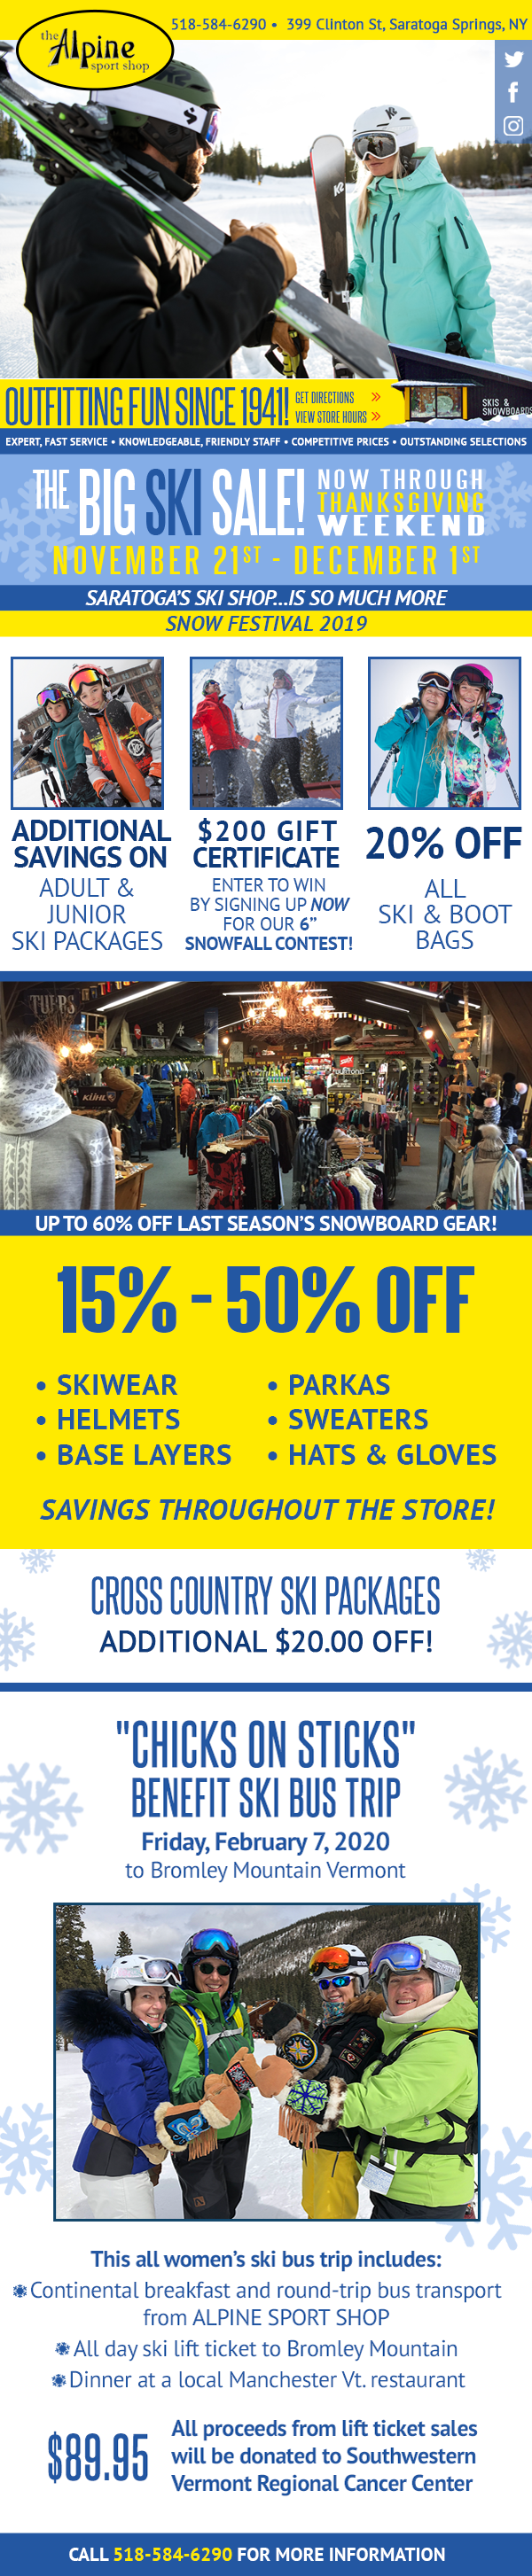 The Big Ski Sale! Now Through Thanksgiving Weekend